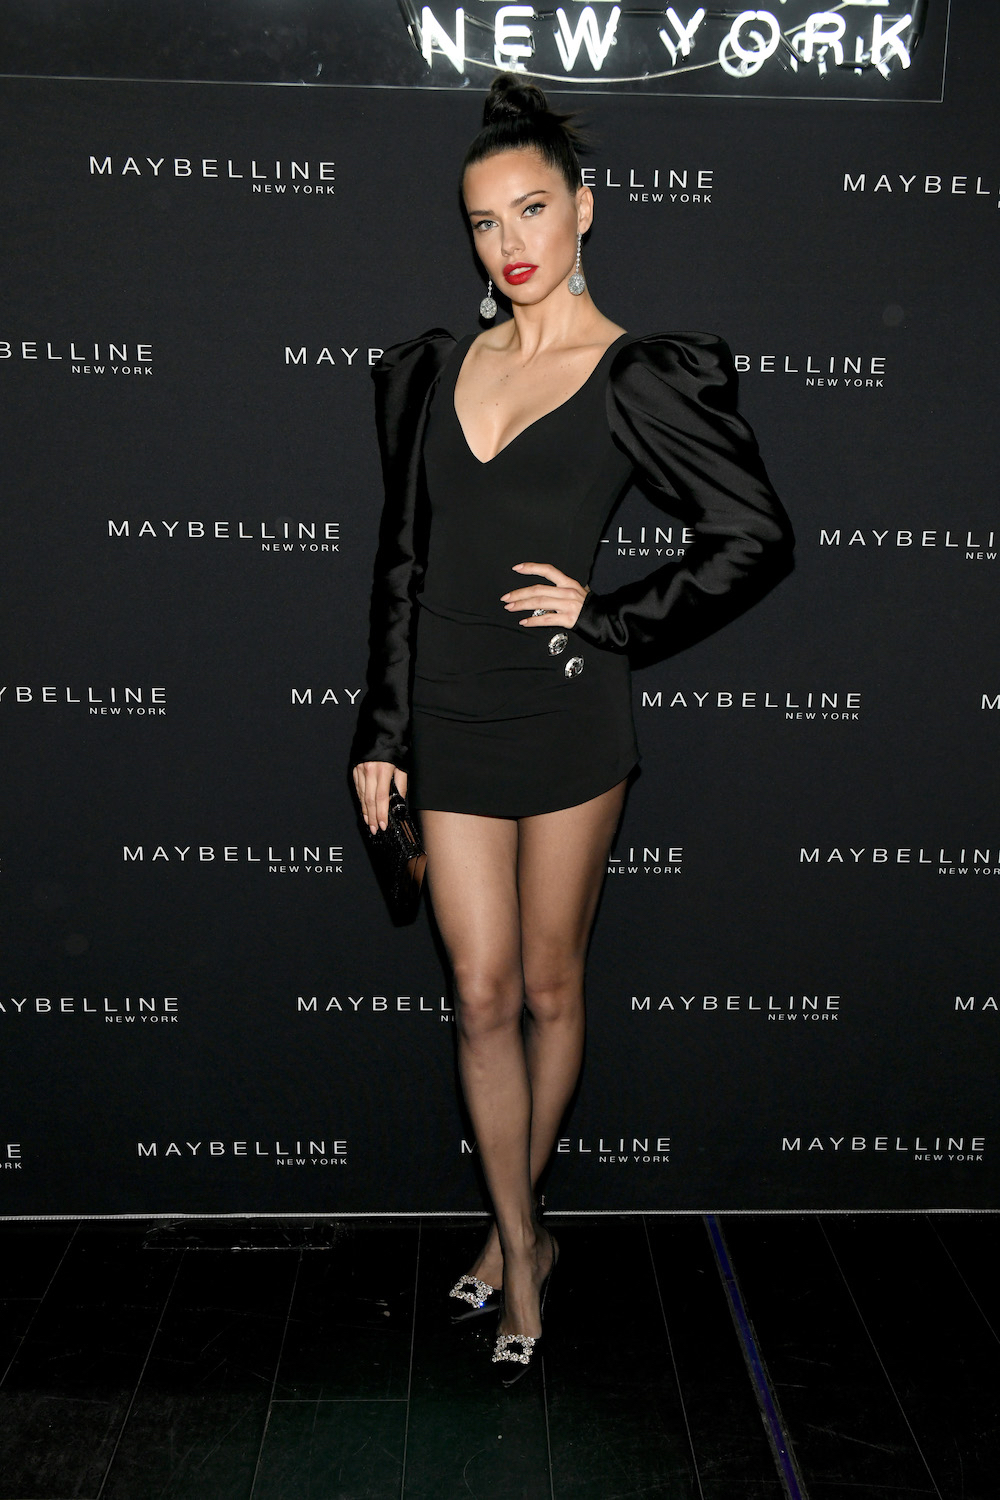 Adriana Lima attends the Maybelline New York Fashion Week Party on February 10, 2019 in New York City.